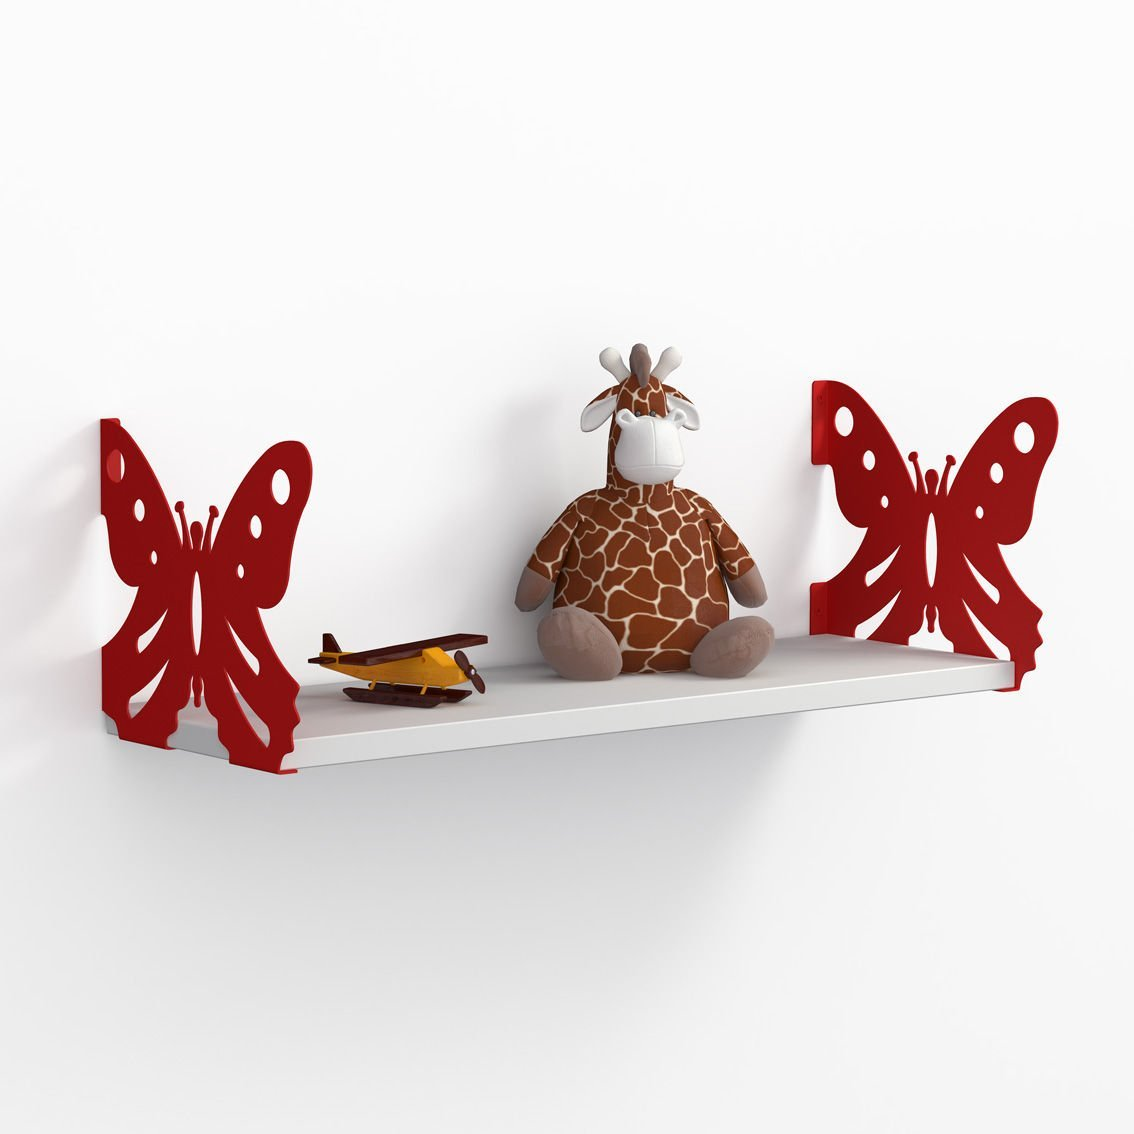 LaModaHome Two Red Butterfly Wall Shelf, 100% Melamine Coated Particle Board - Size (23.6'' x 7.9'' x 7.9''), Easy to Hang with Invisible Brackets, Wall Mounted Floating Shelves for Home & Office